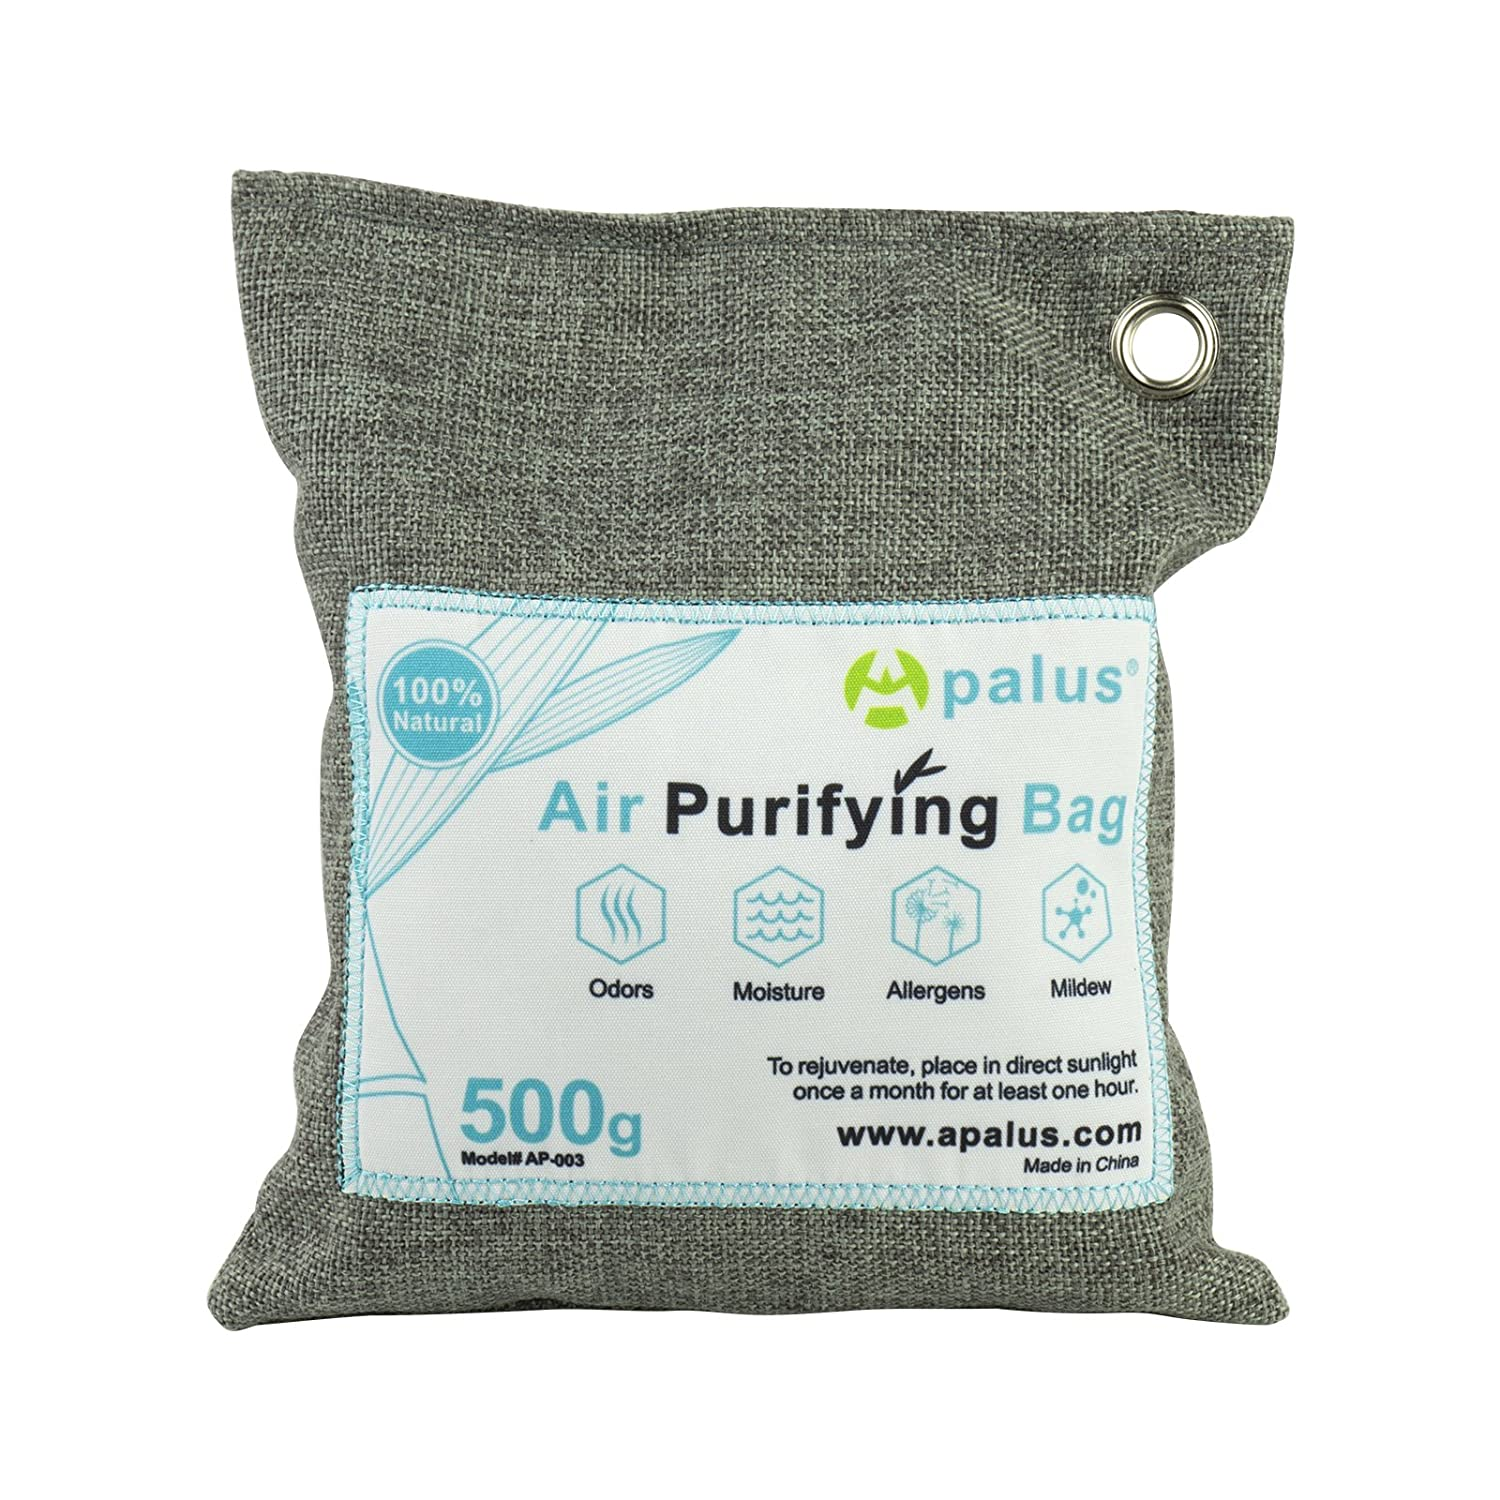 APALUS Natural Air Purifying Bag. Odor Eliminator for Cars, Closets, Bathrooms and Pet Areas. Captures and Eliminates Odors. Charcoal Color, 500G AP-003